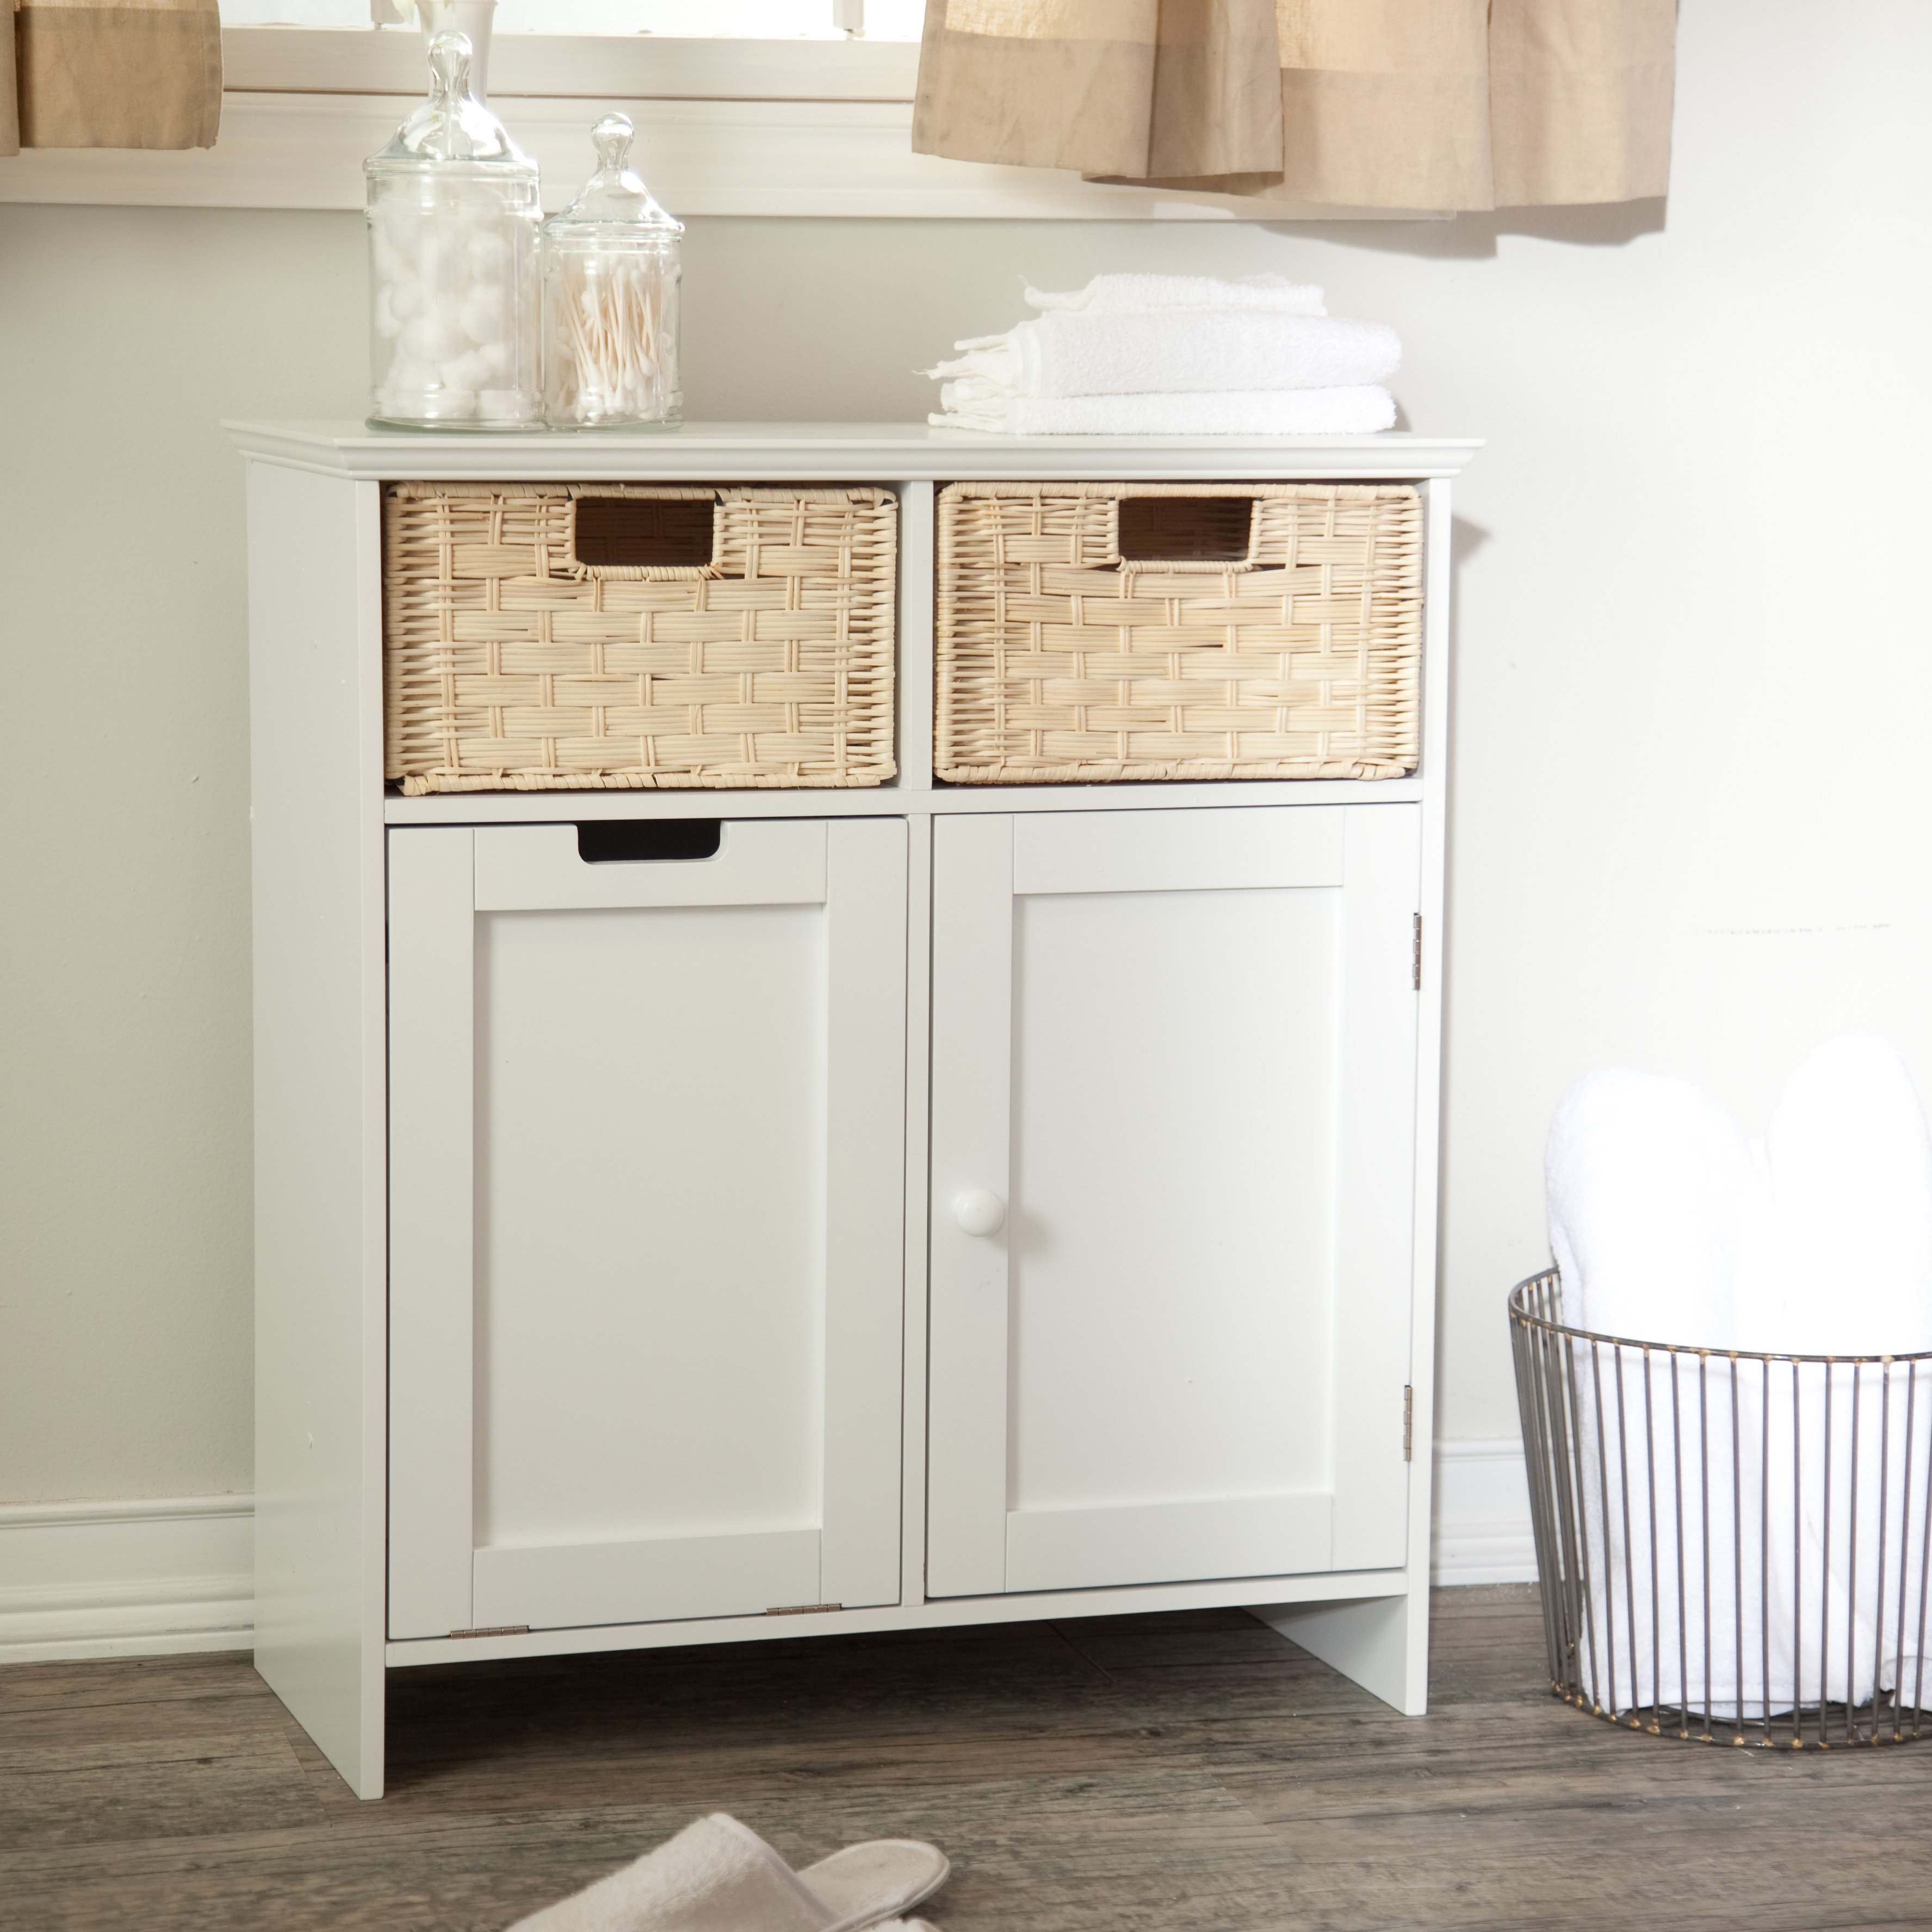 Floor Cabinets For The Bathroom